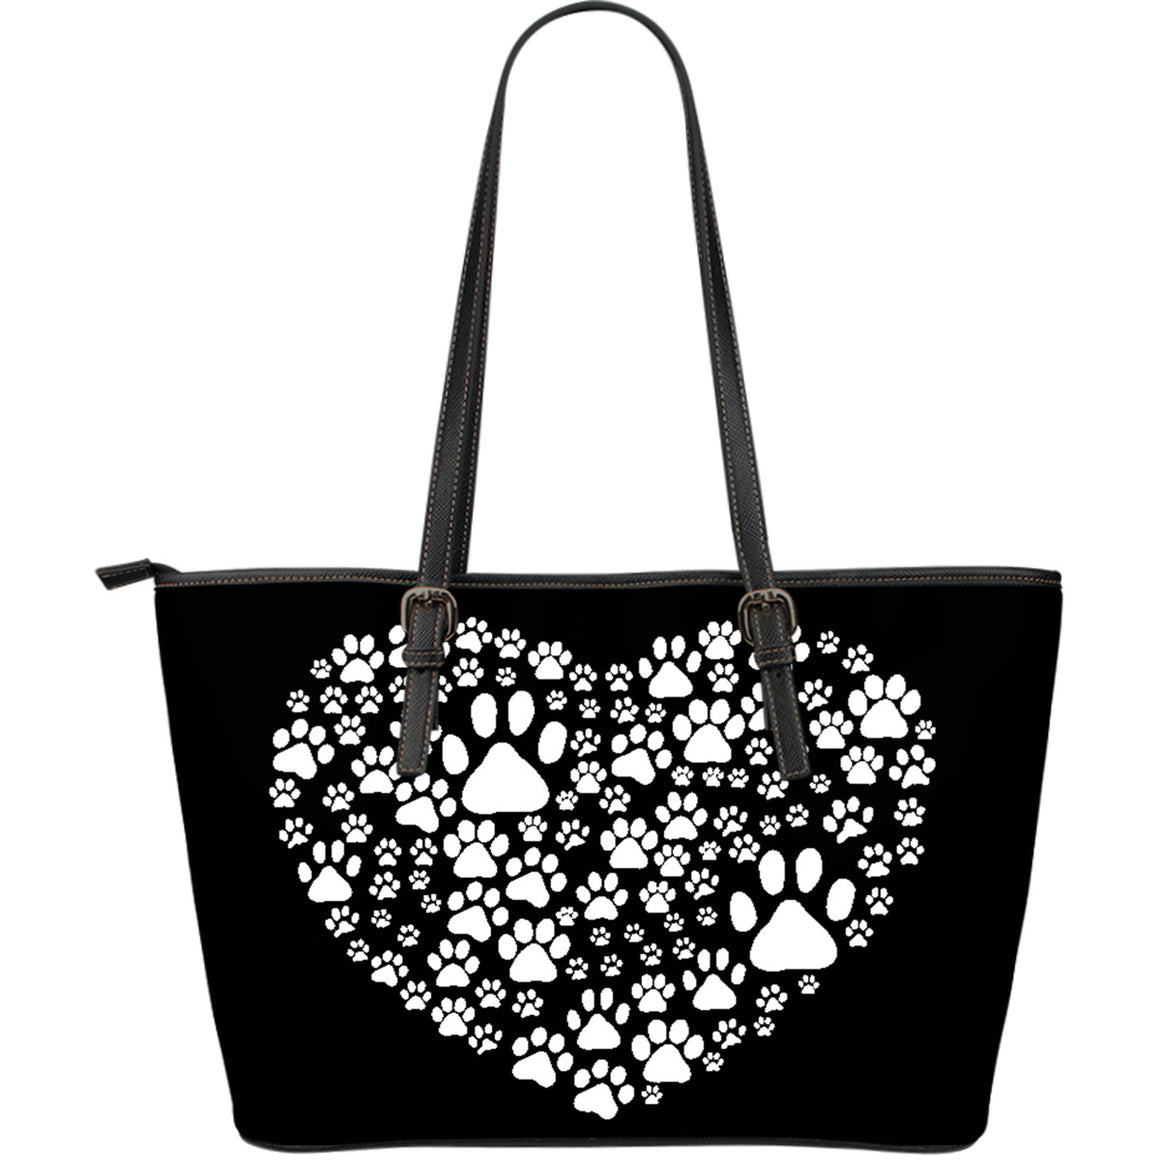 Paw Print Large Leather Tote